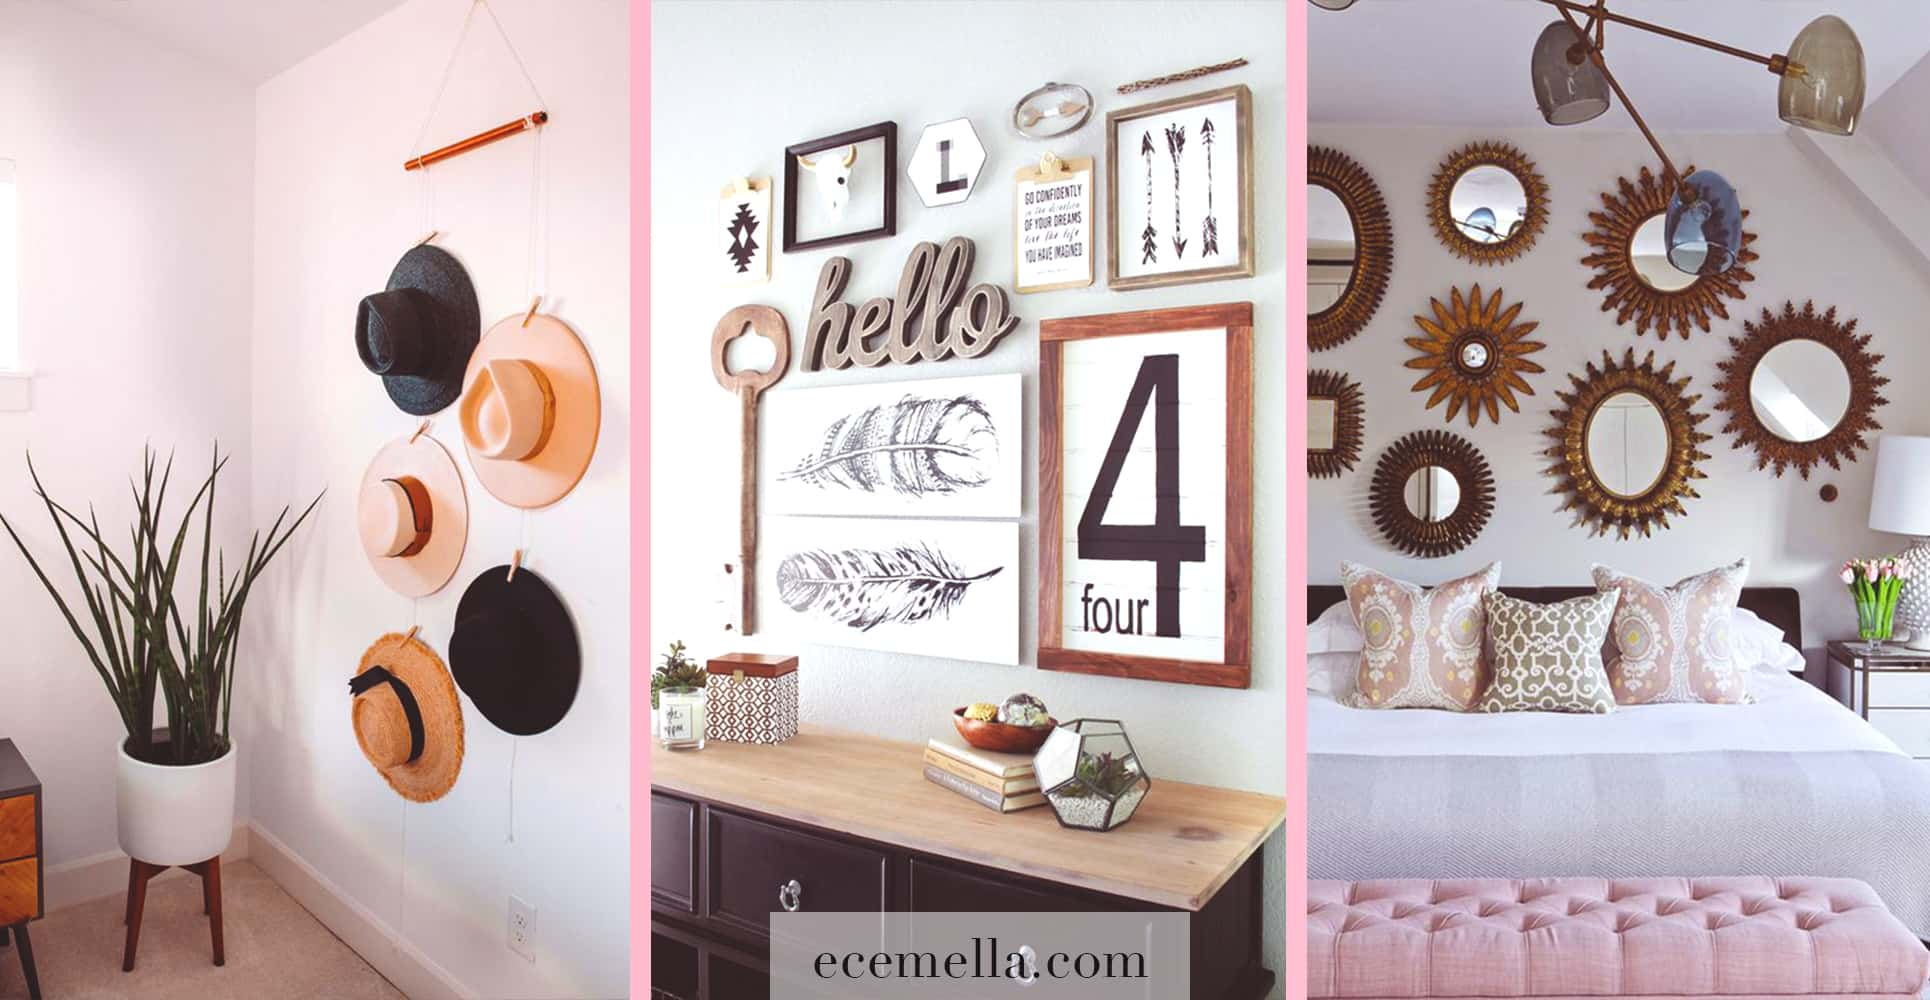 How To Decorate Your Blank Walls: 19 Inspirational Chic Ideas